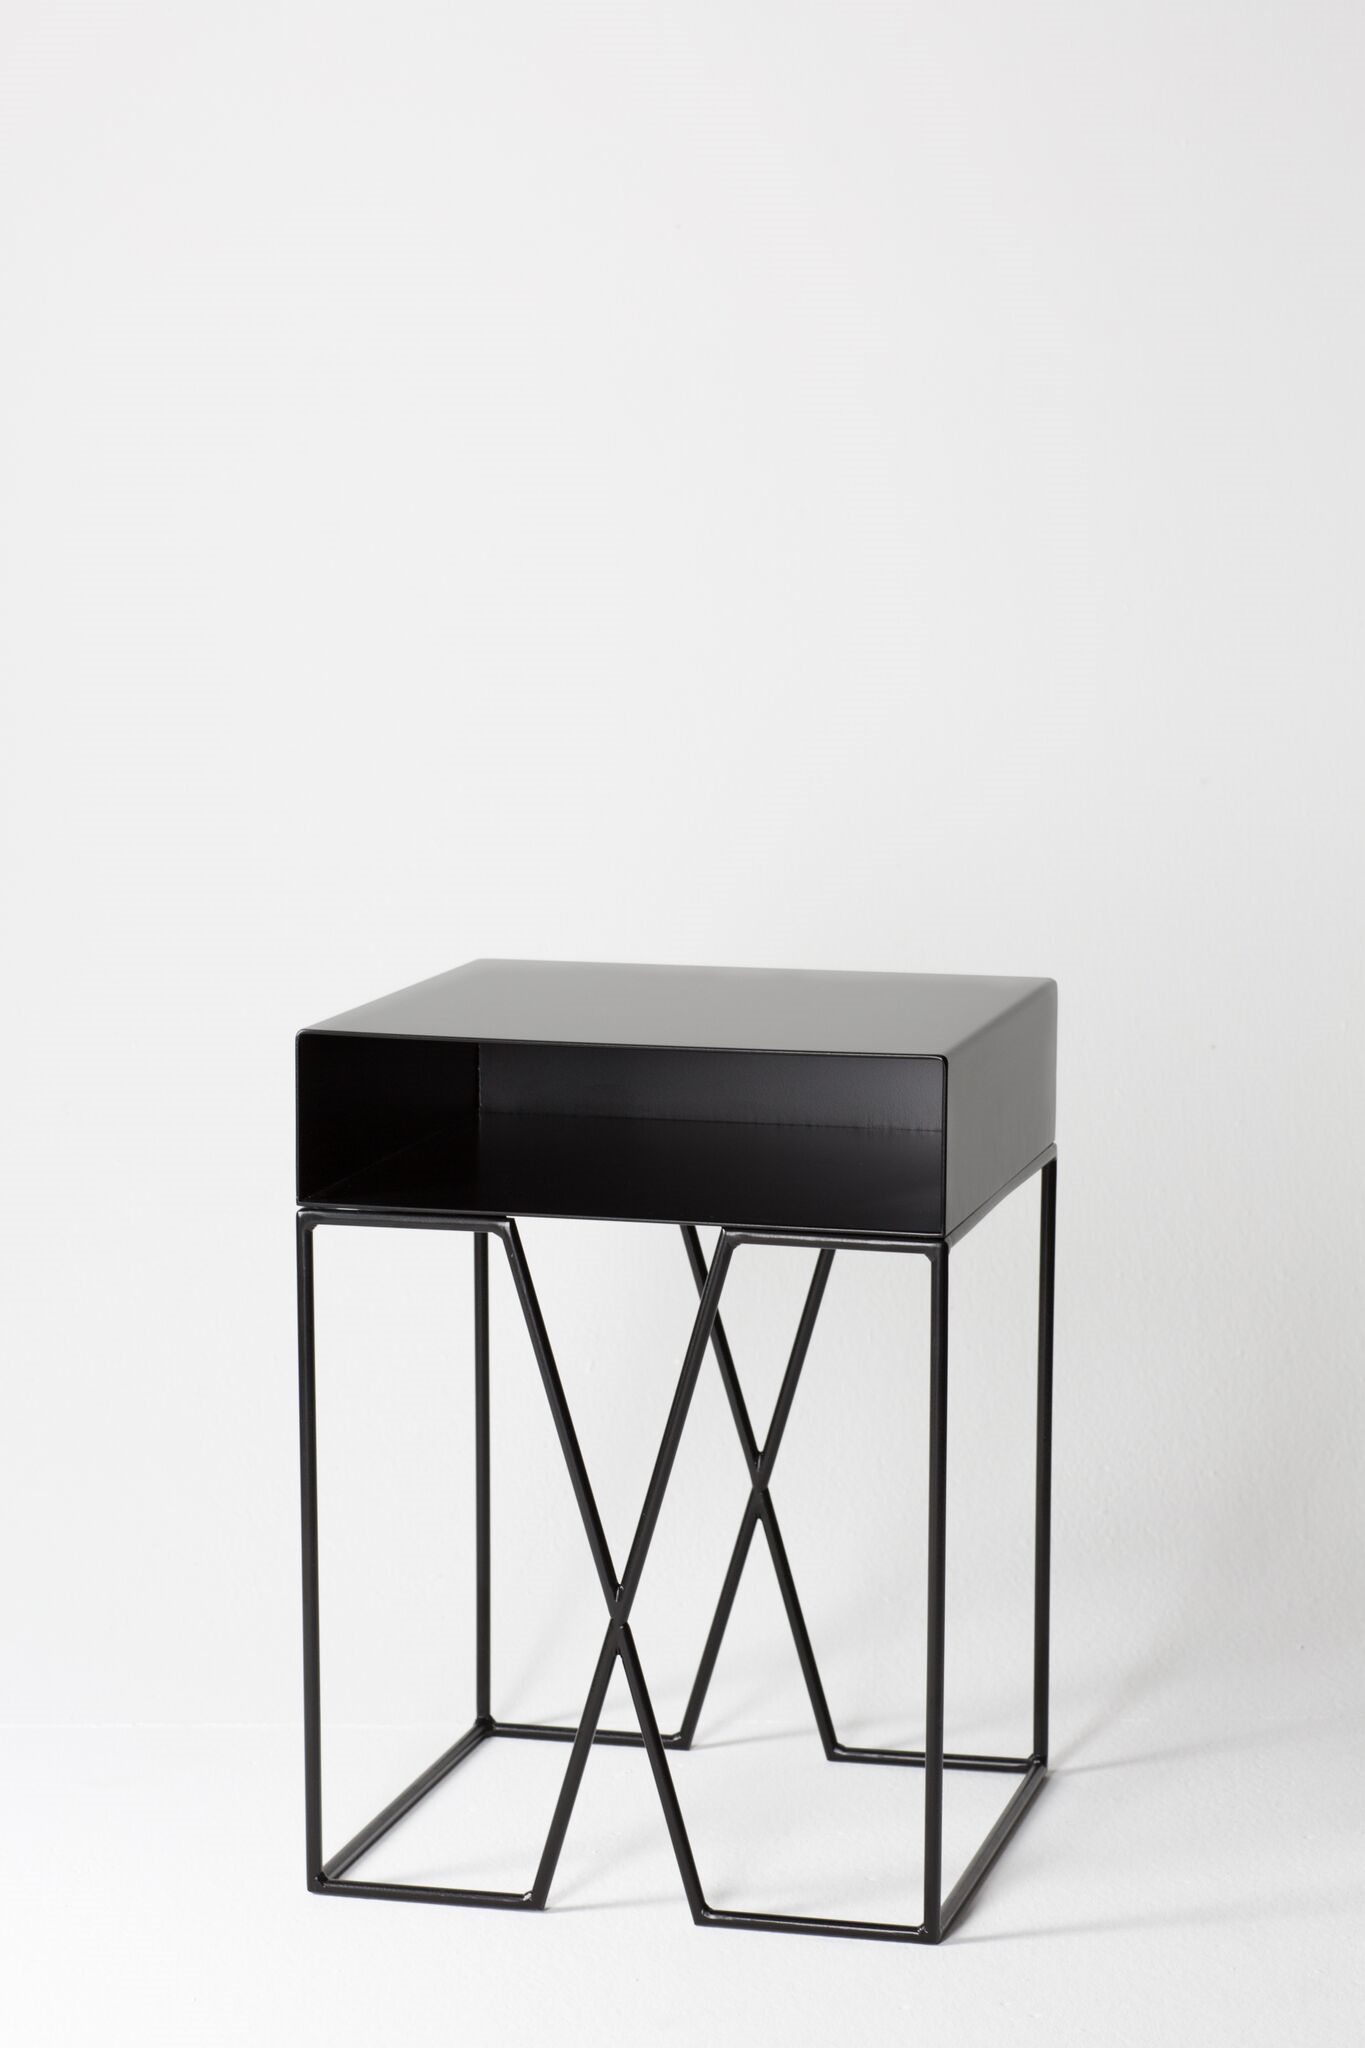 Gallery Of Tangram Bedside Table By Idle Hands Local Australian Furniture Object Design West Heidelberg Melbourne Image 3